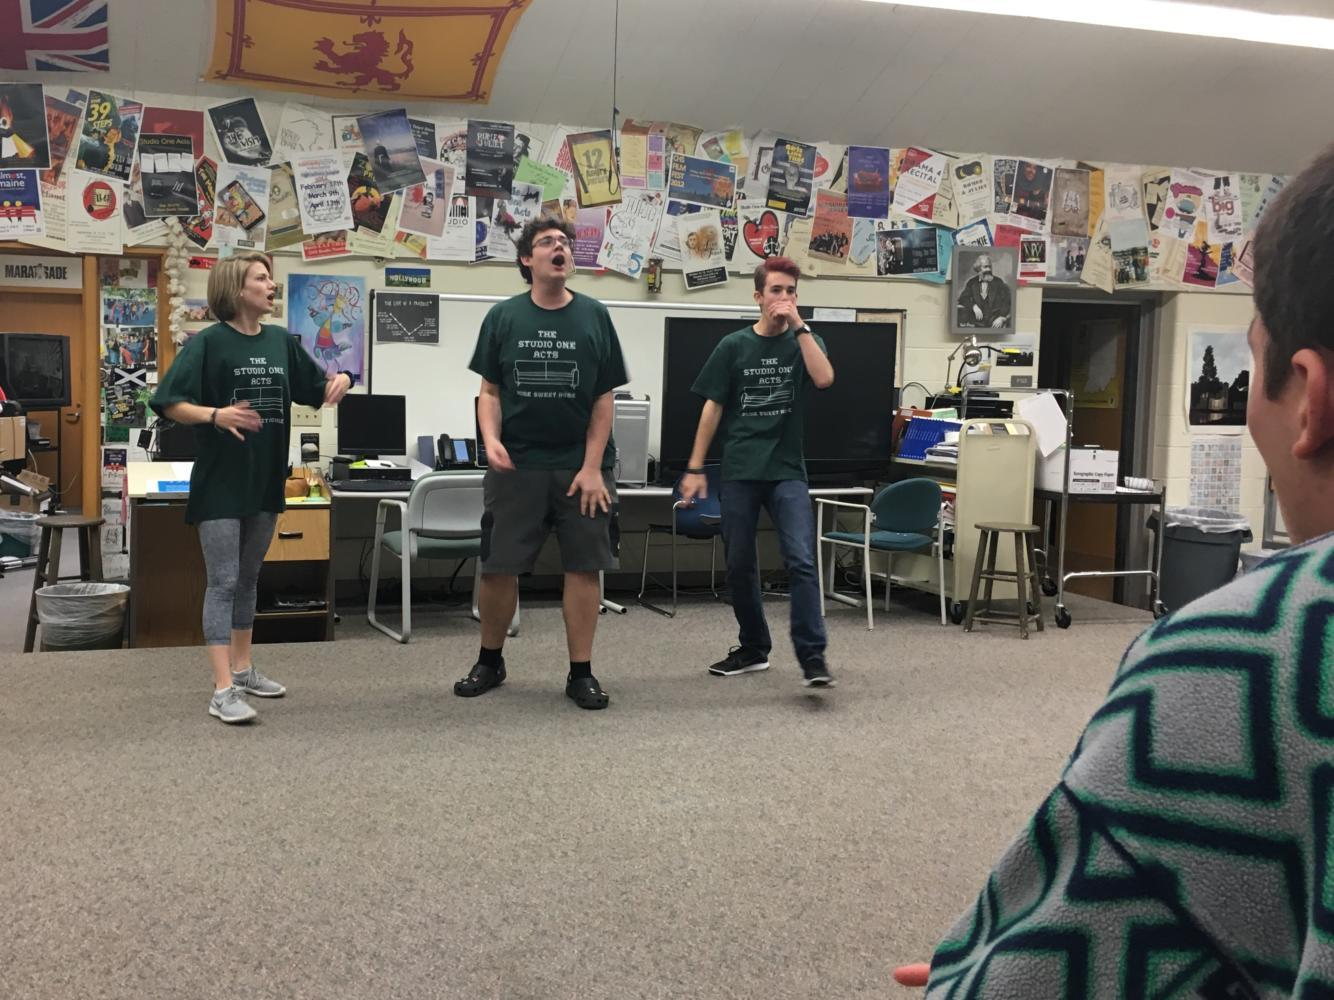 ComedySportz members Georgia Simmons, Chuck Burton and Jake Greene compete against each other during an improv game. Through this game, they prepared for their upcoming matches in the spring.